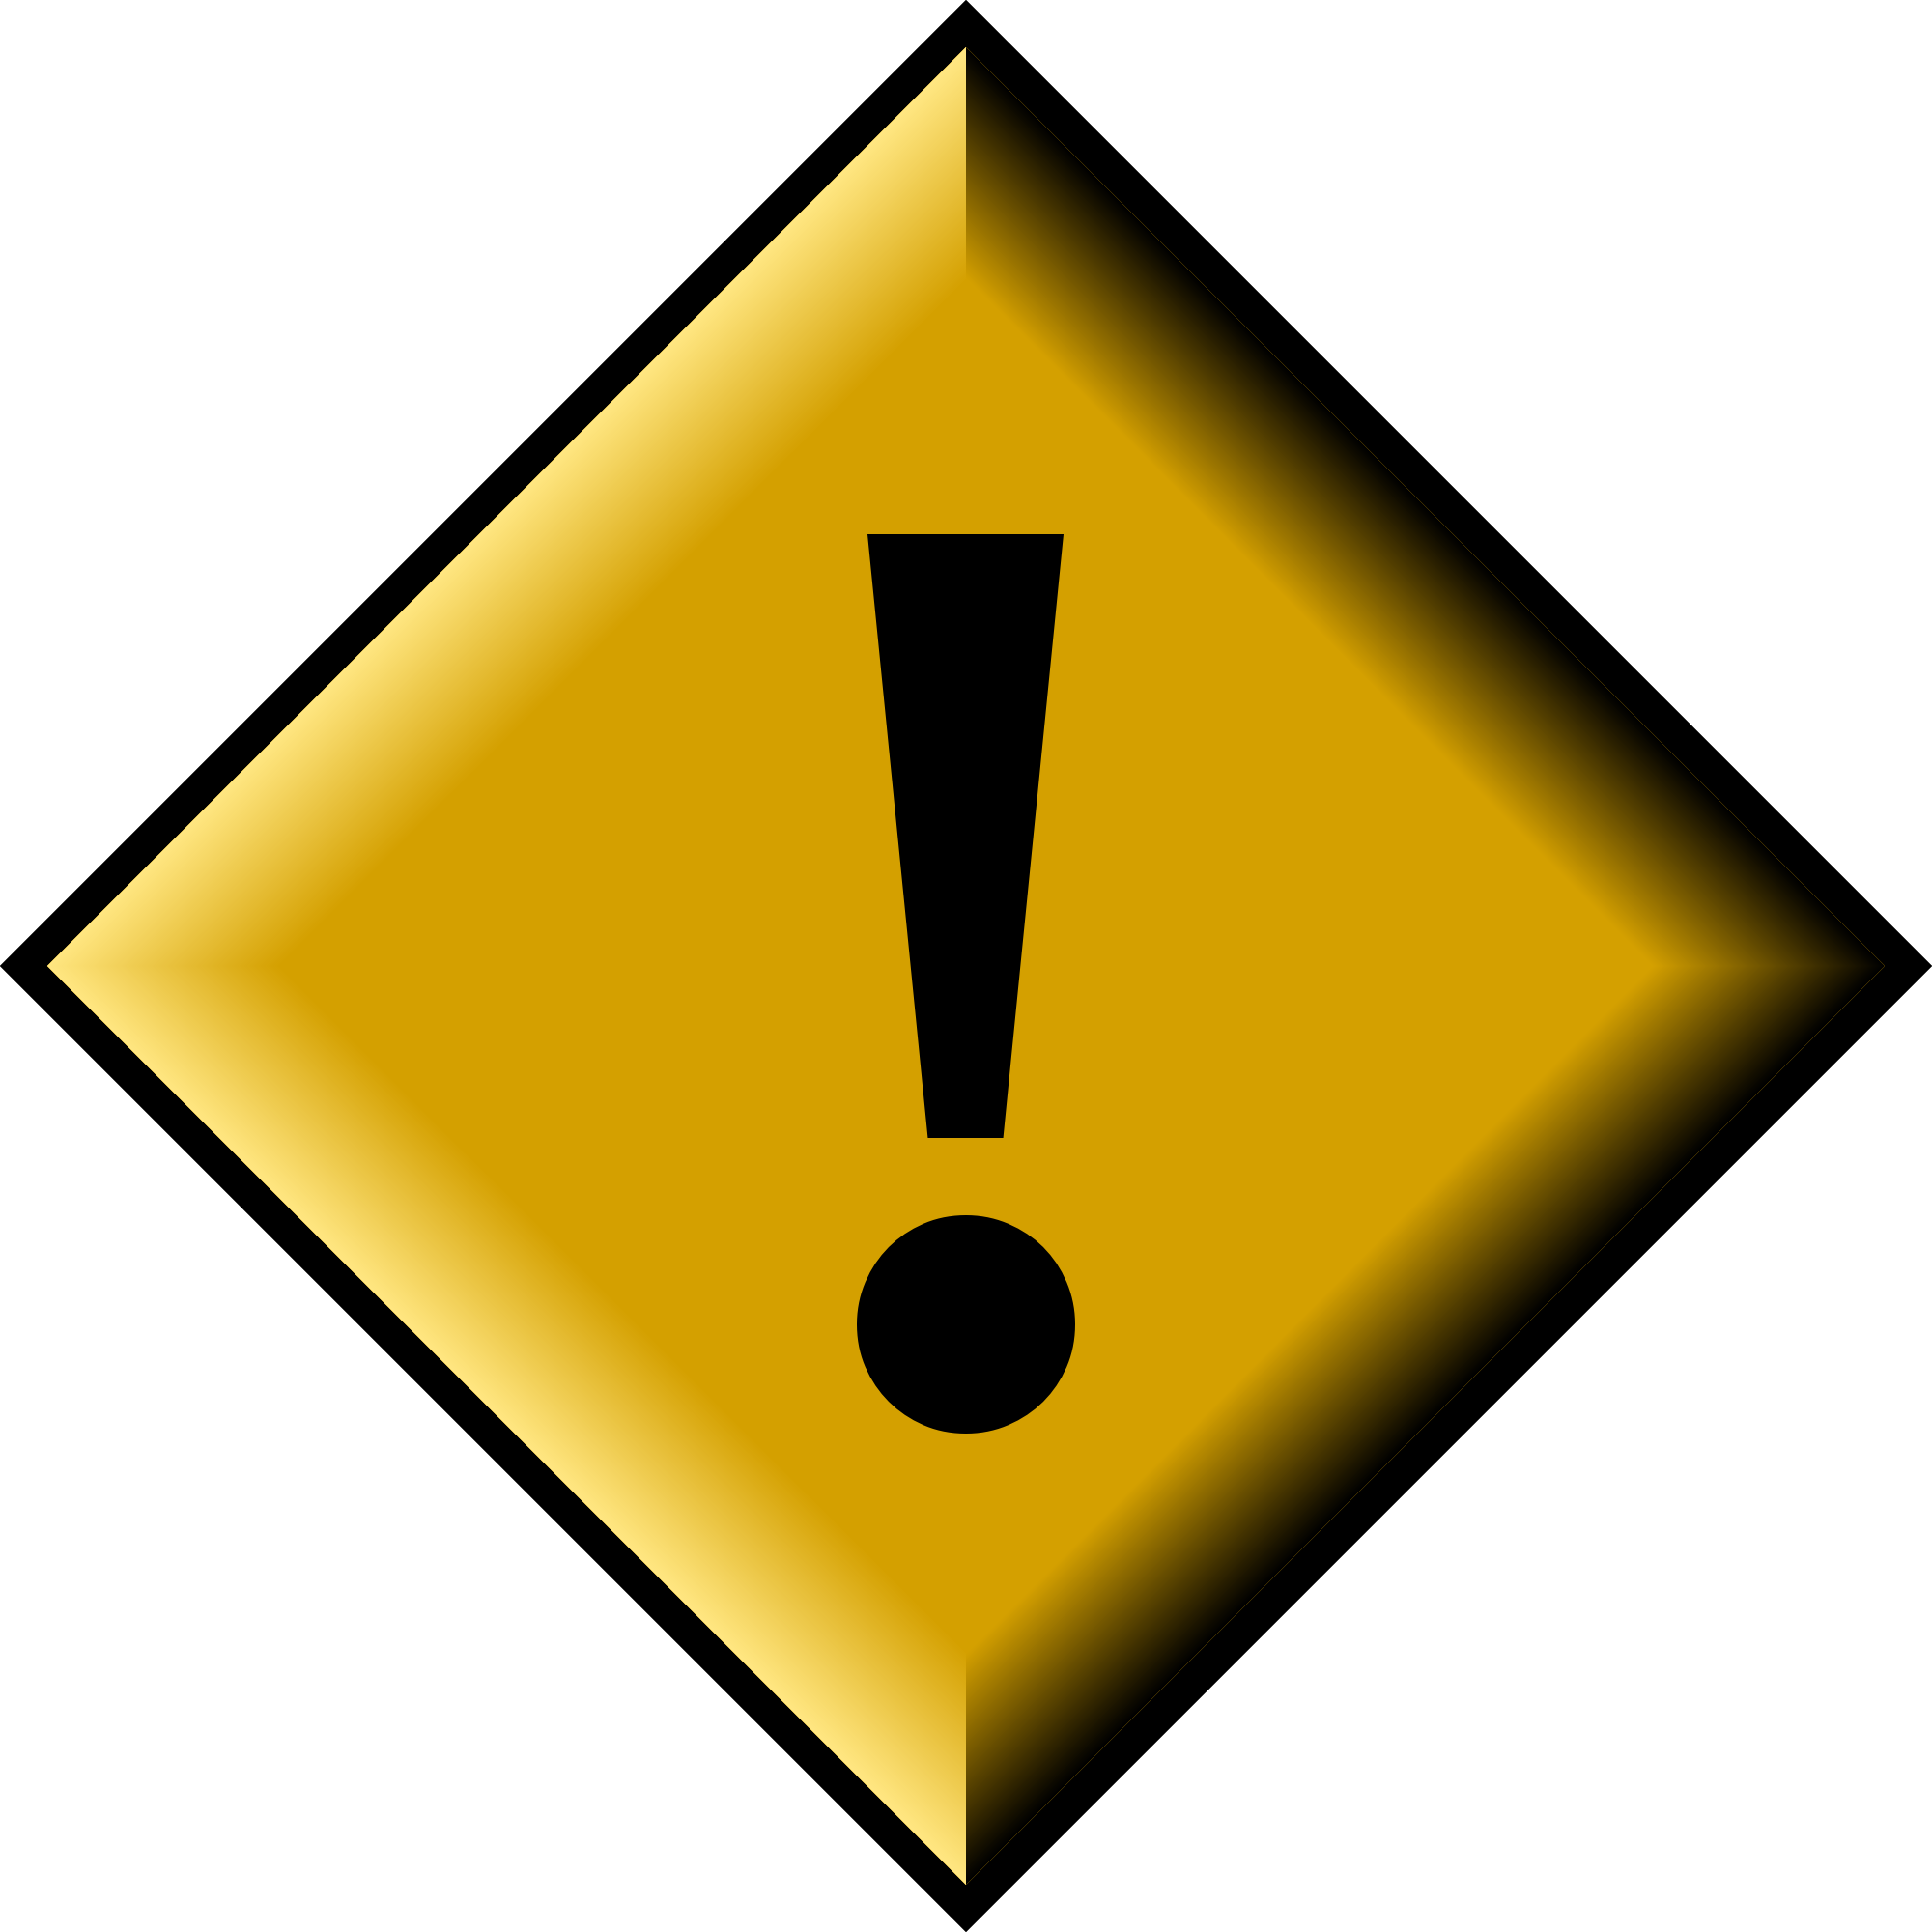 Caution svg #12, Download drawings